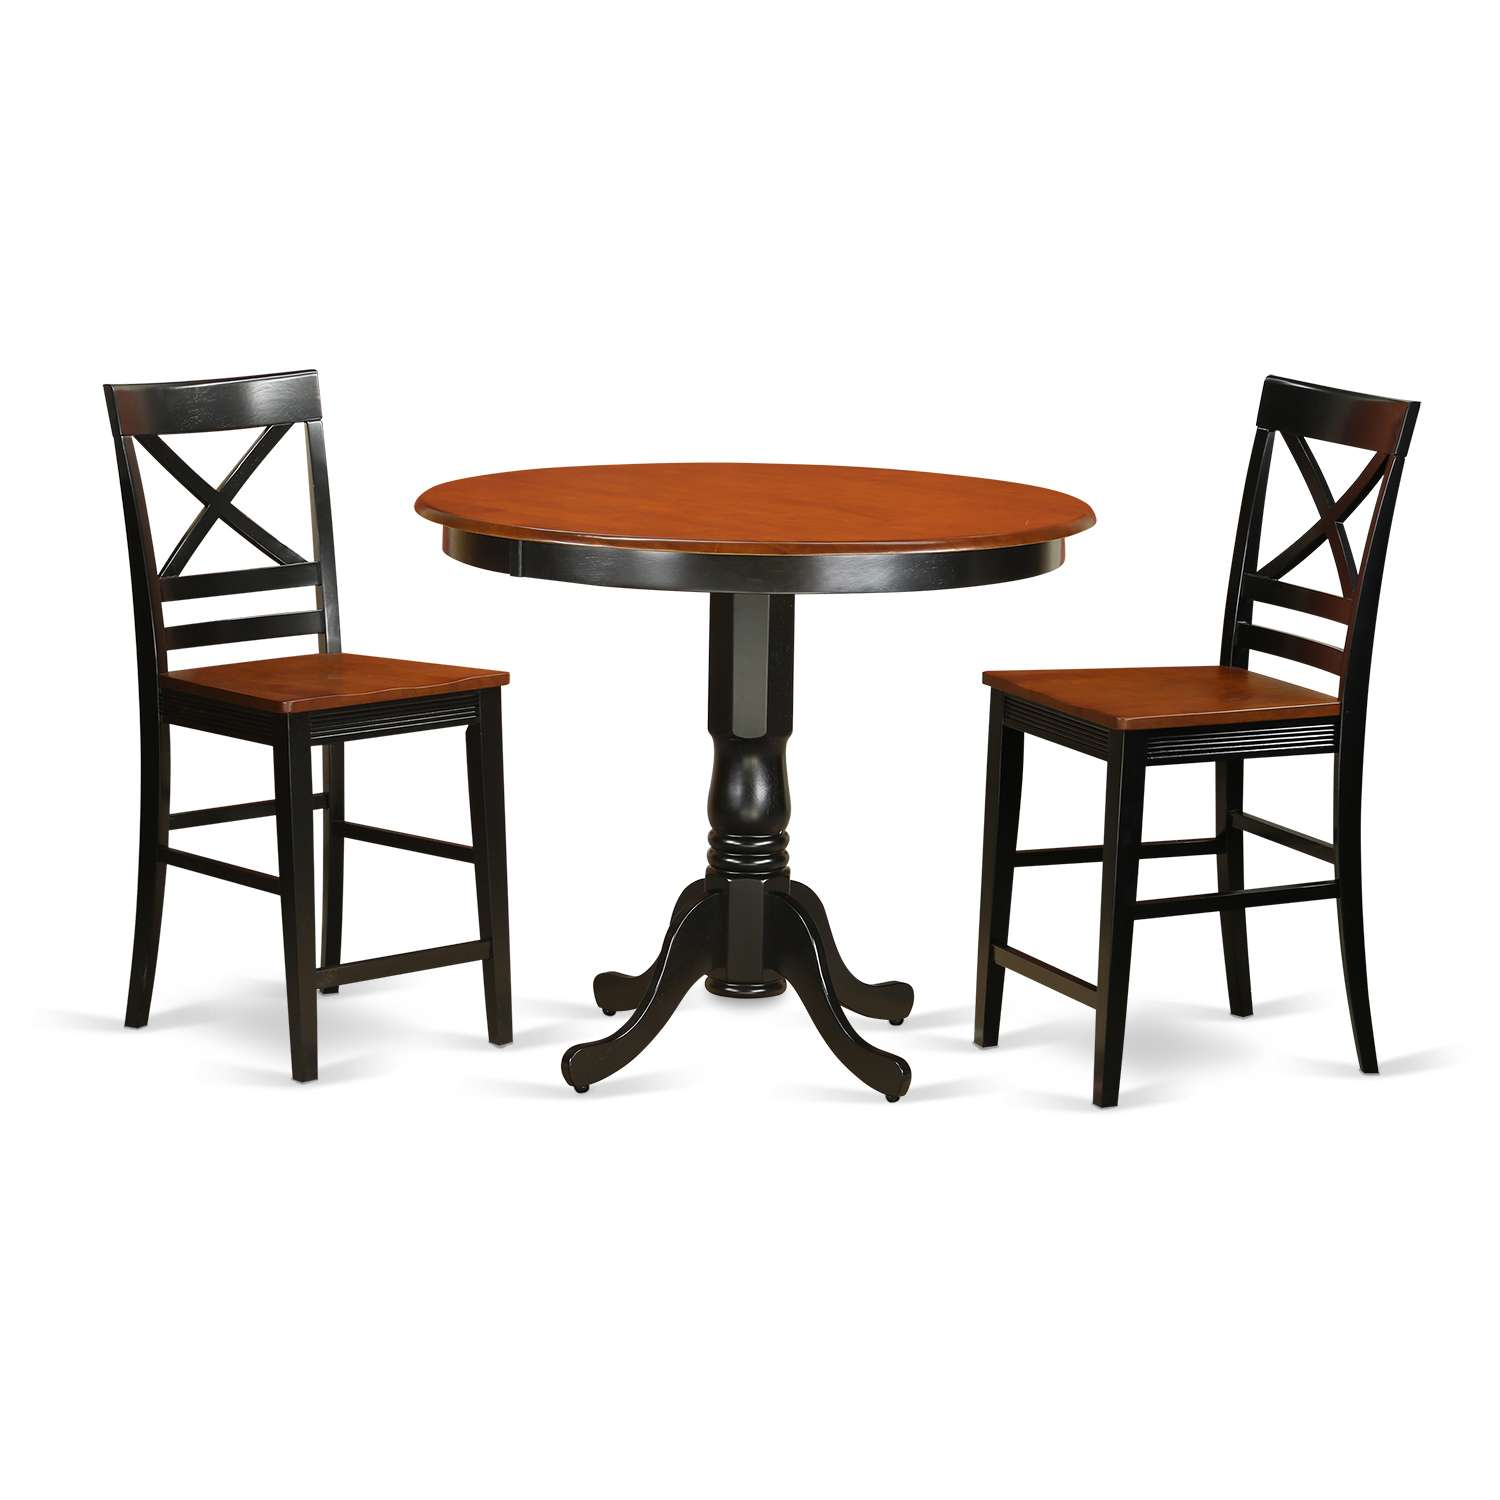 Excellent asian pub table chairs black opinion